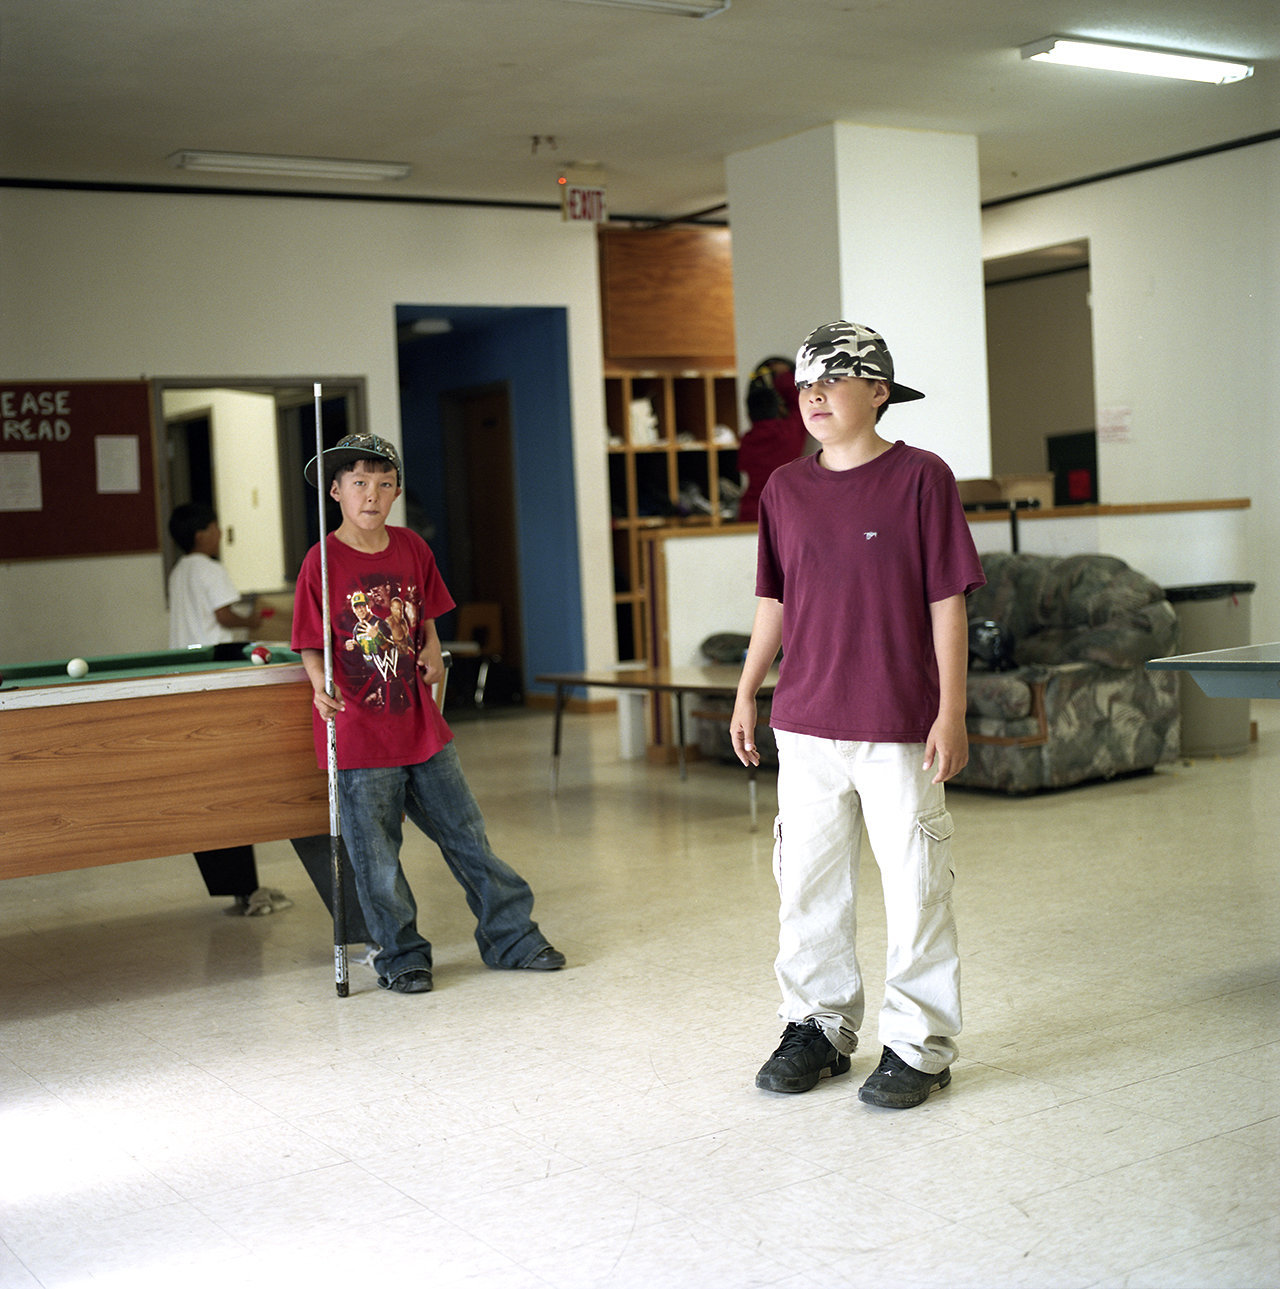 Craig and Mario at the Youth Center, 2010